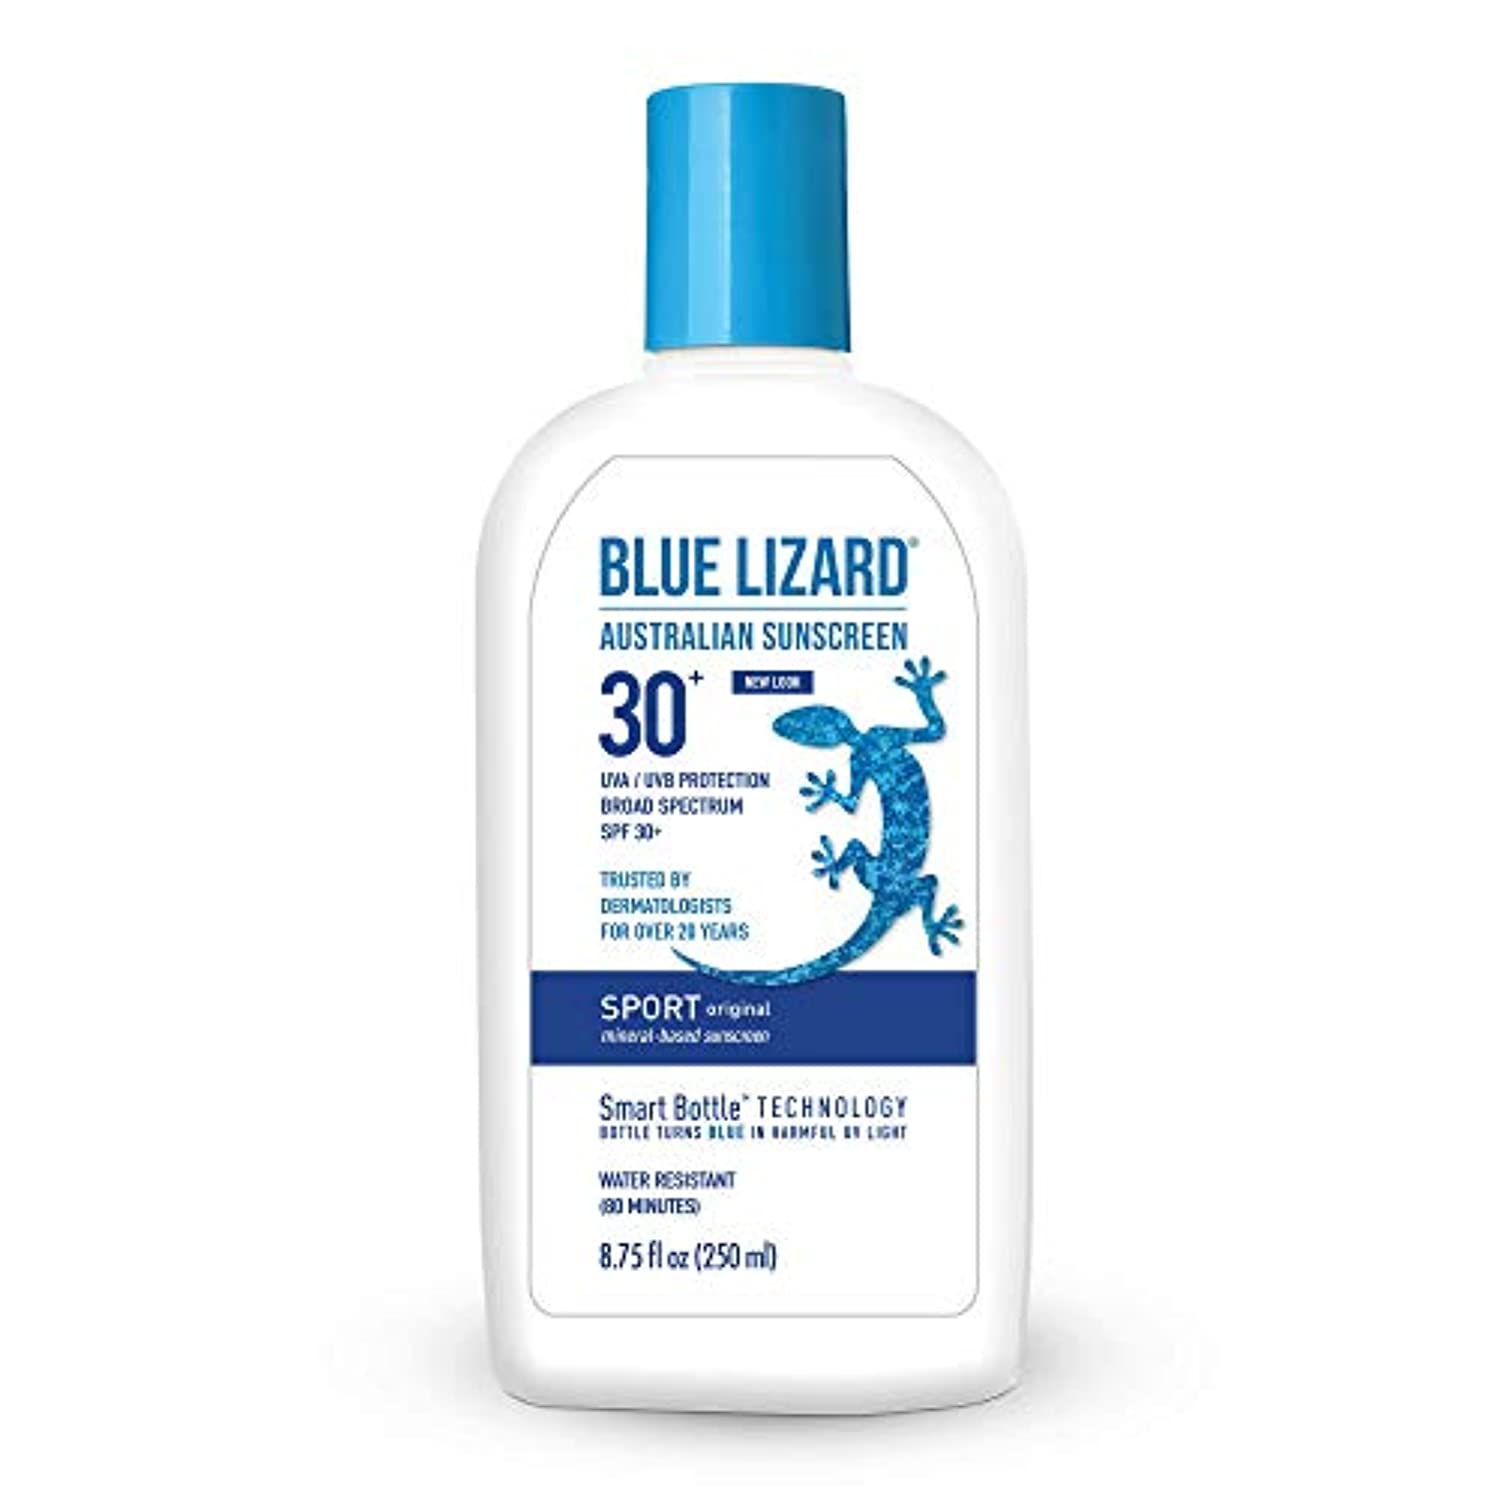 振る舞い従うゴミ箱を空にするBlue Lizard Australian SUNSCREEN SPF 30+, Sport SPF 30+ (8.75 oz) by Blue Lizard